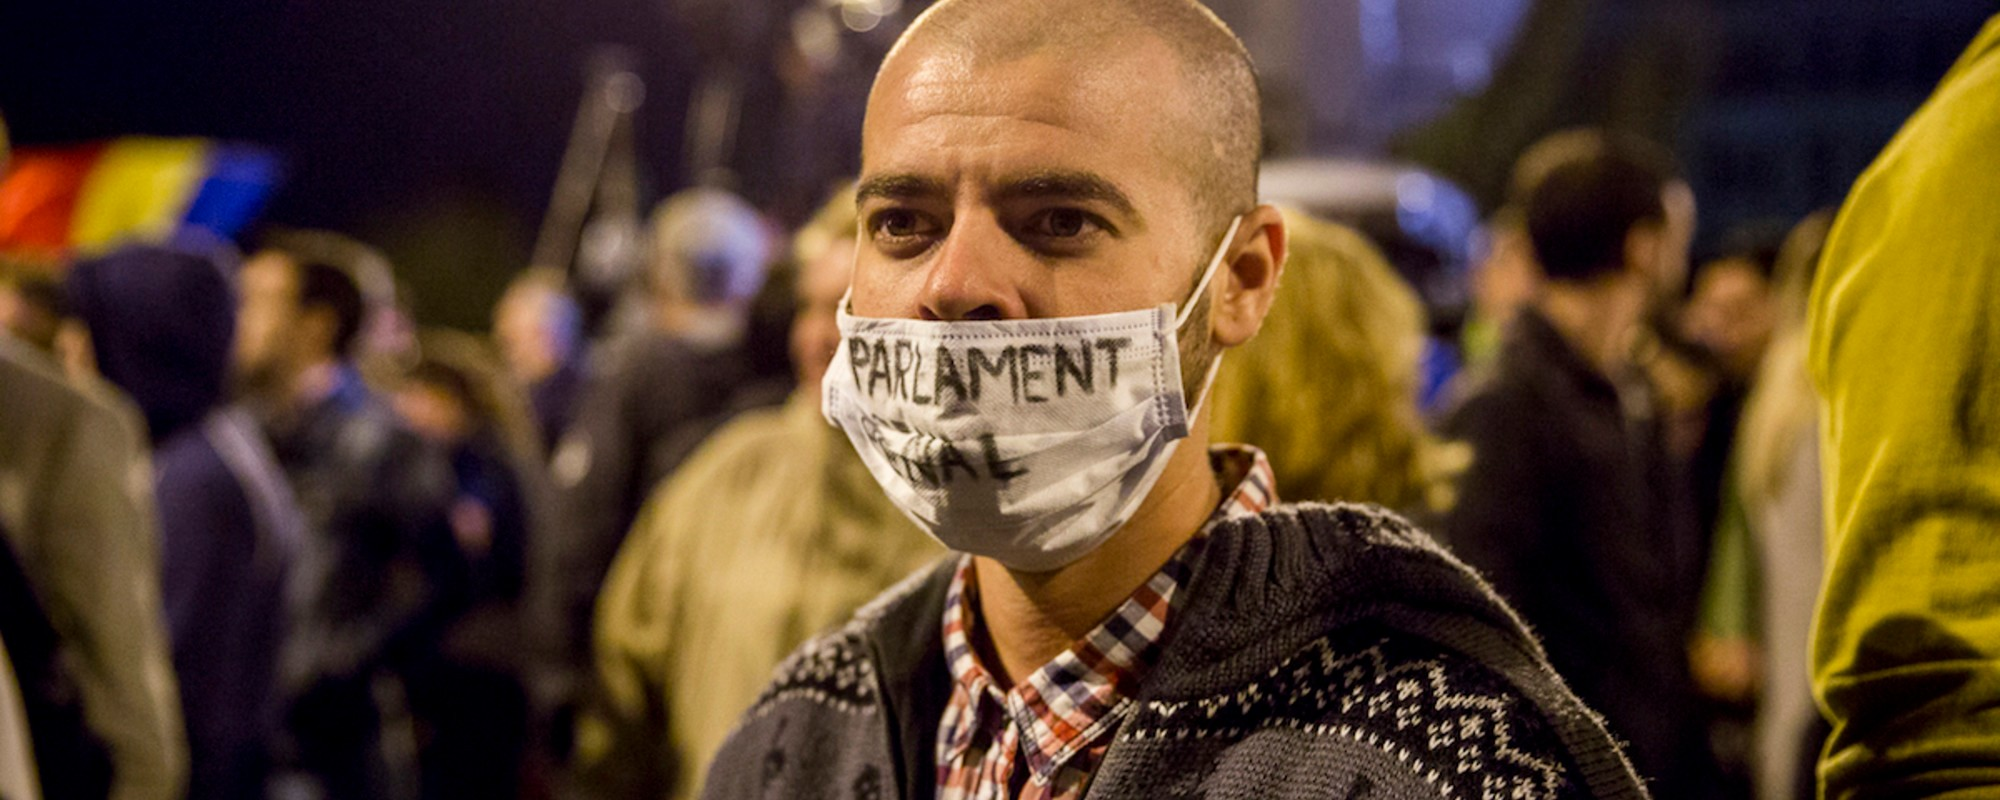 Romanians Are Protesting Government Corruption